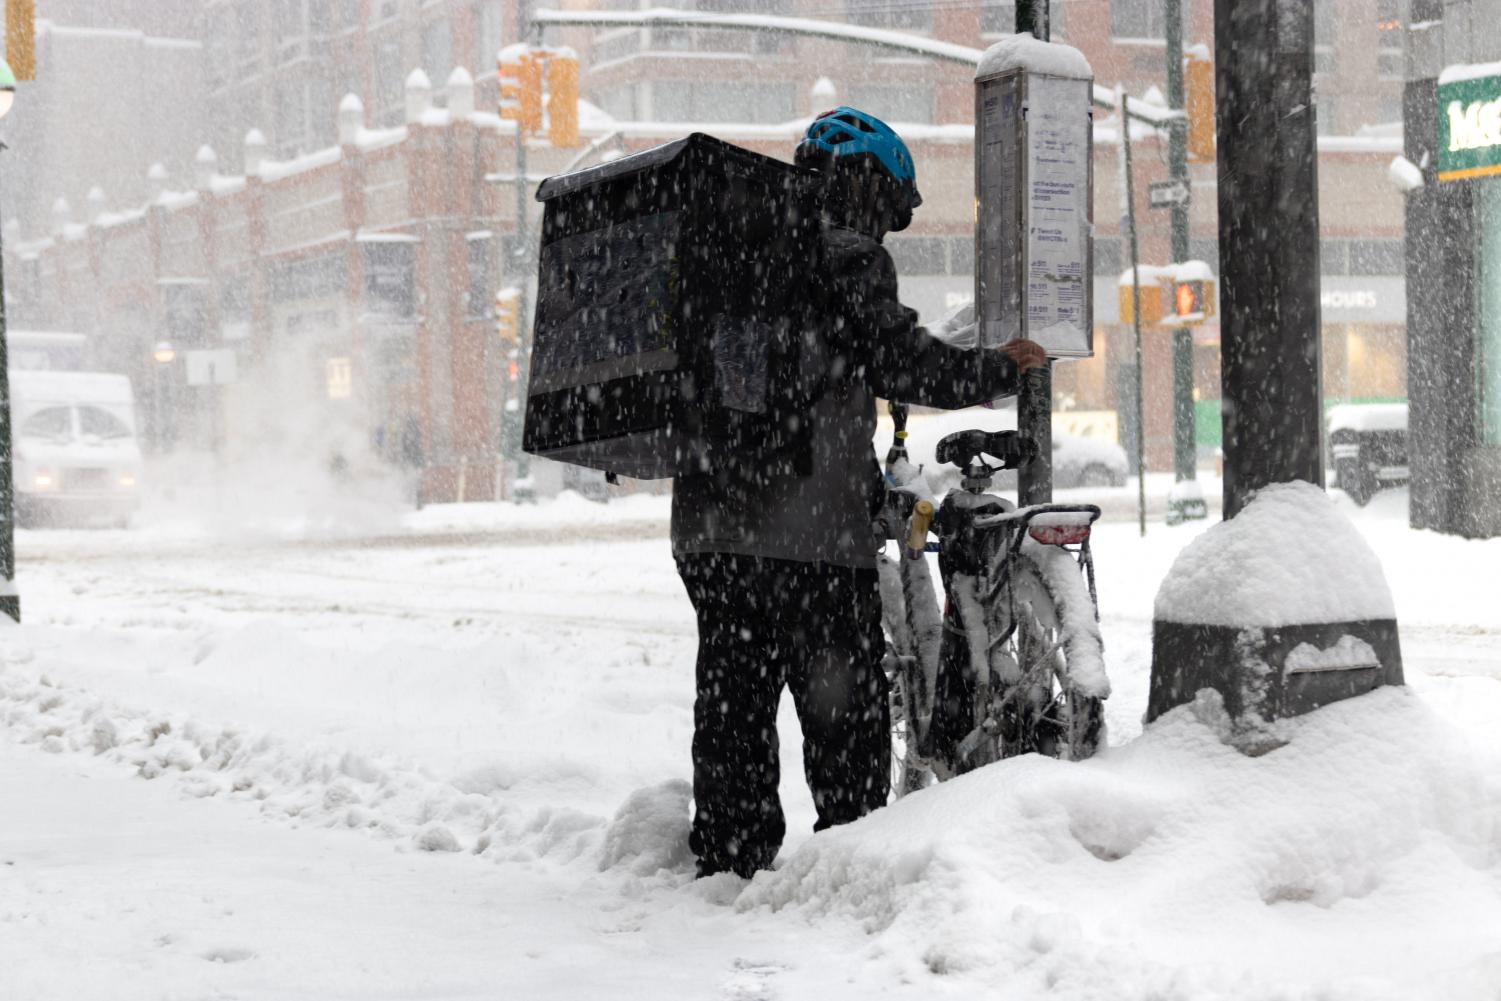 a delivery worker brushes snow of their bike